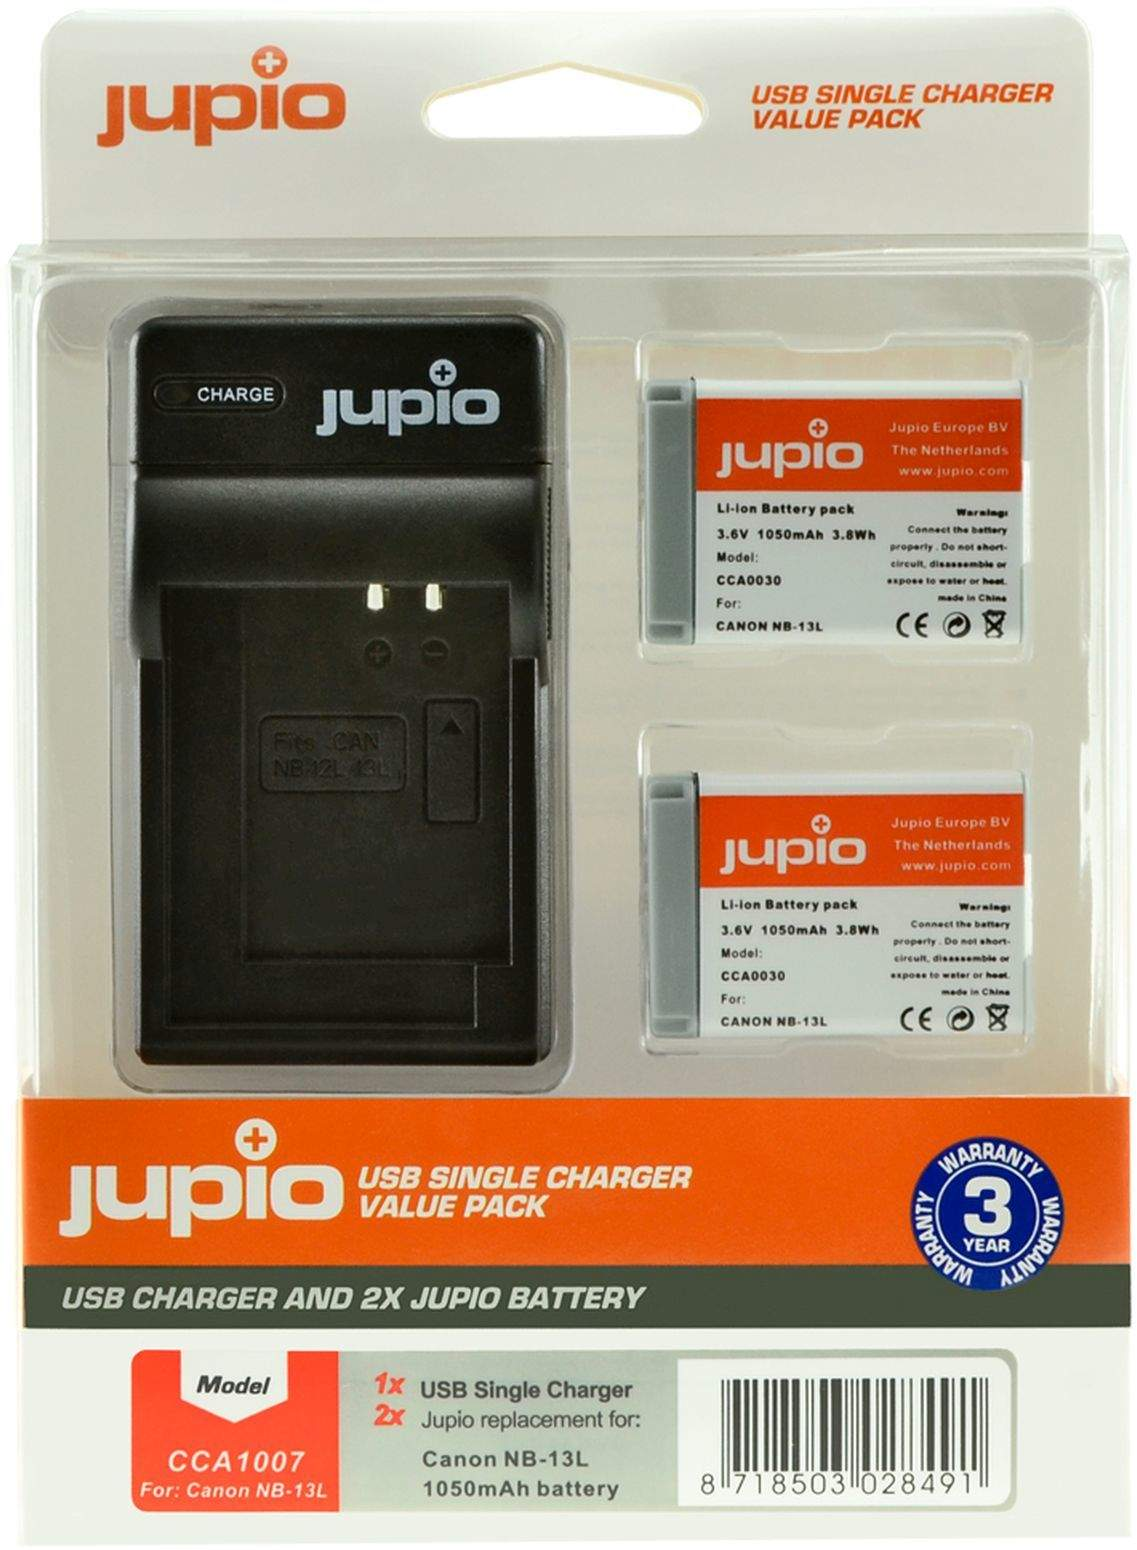 2 x Jupio Canon NB-13 Batteries & Single Charger Kit main image